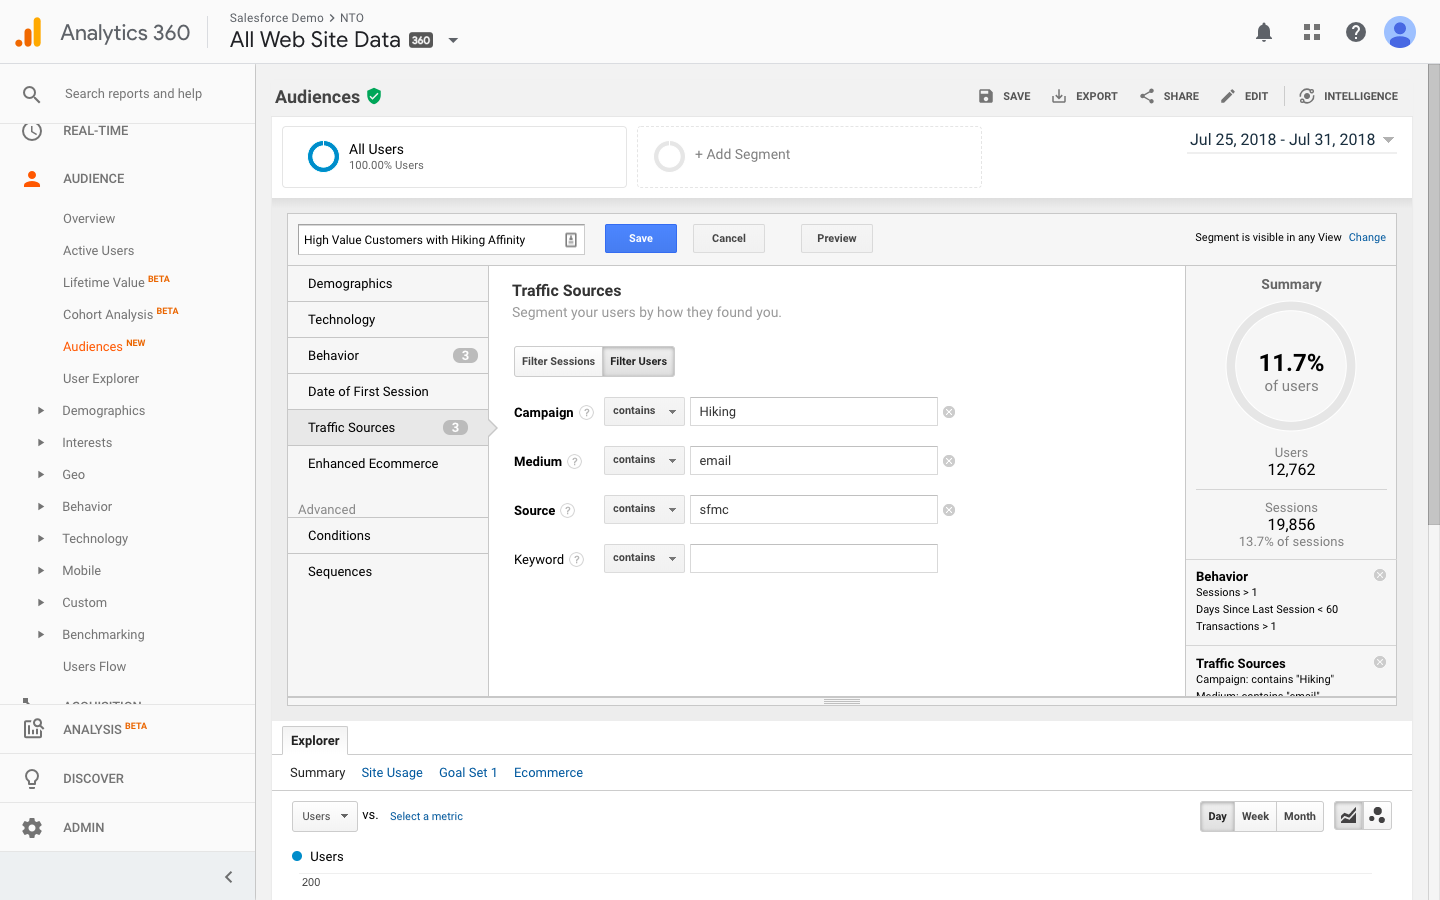 Analytics 360 audience with Marketing Cloud email data